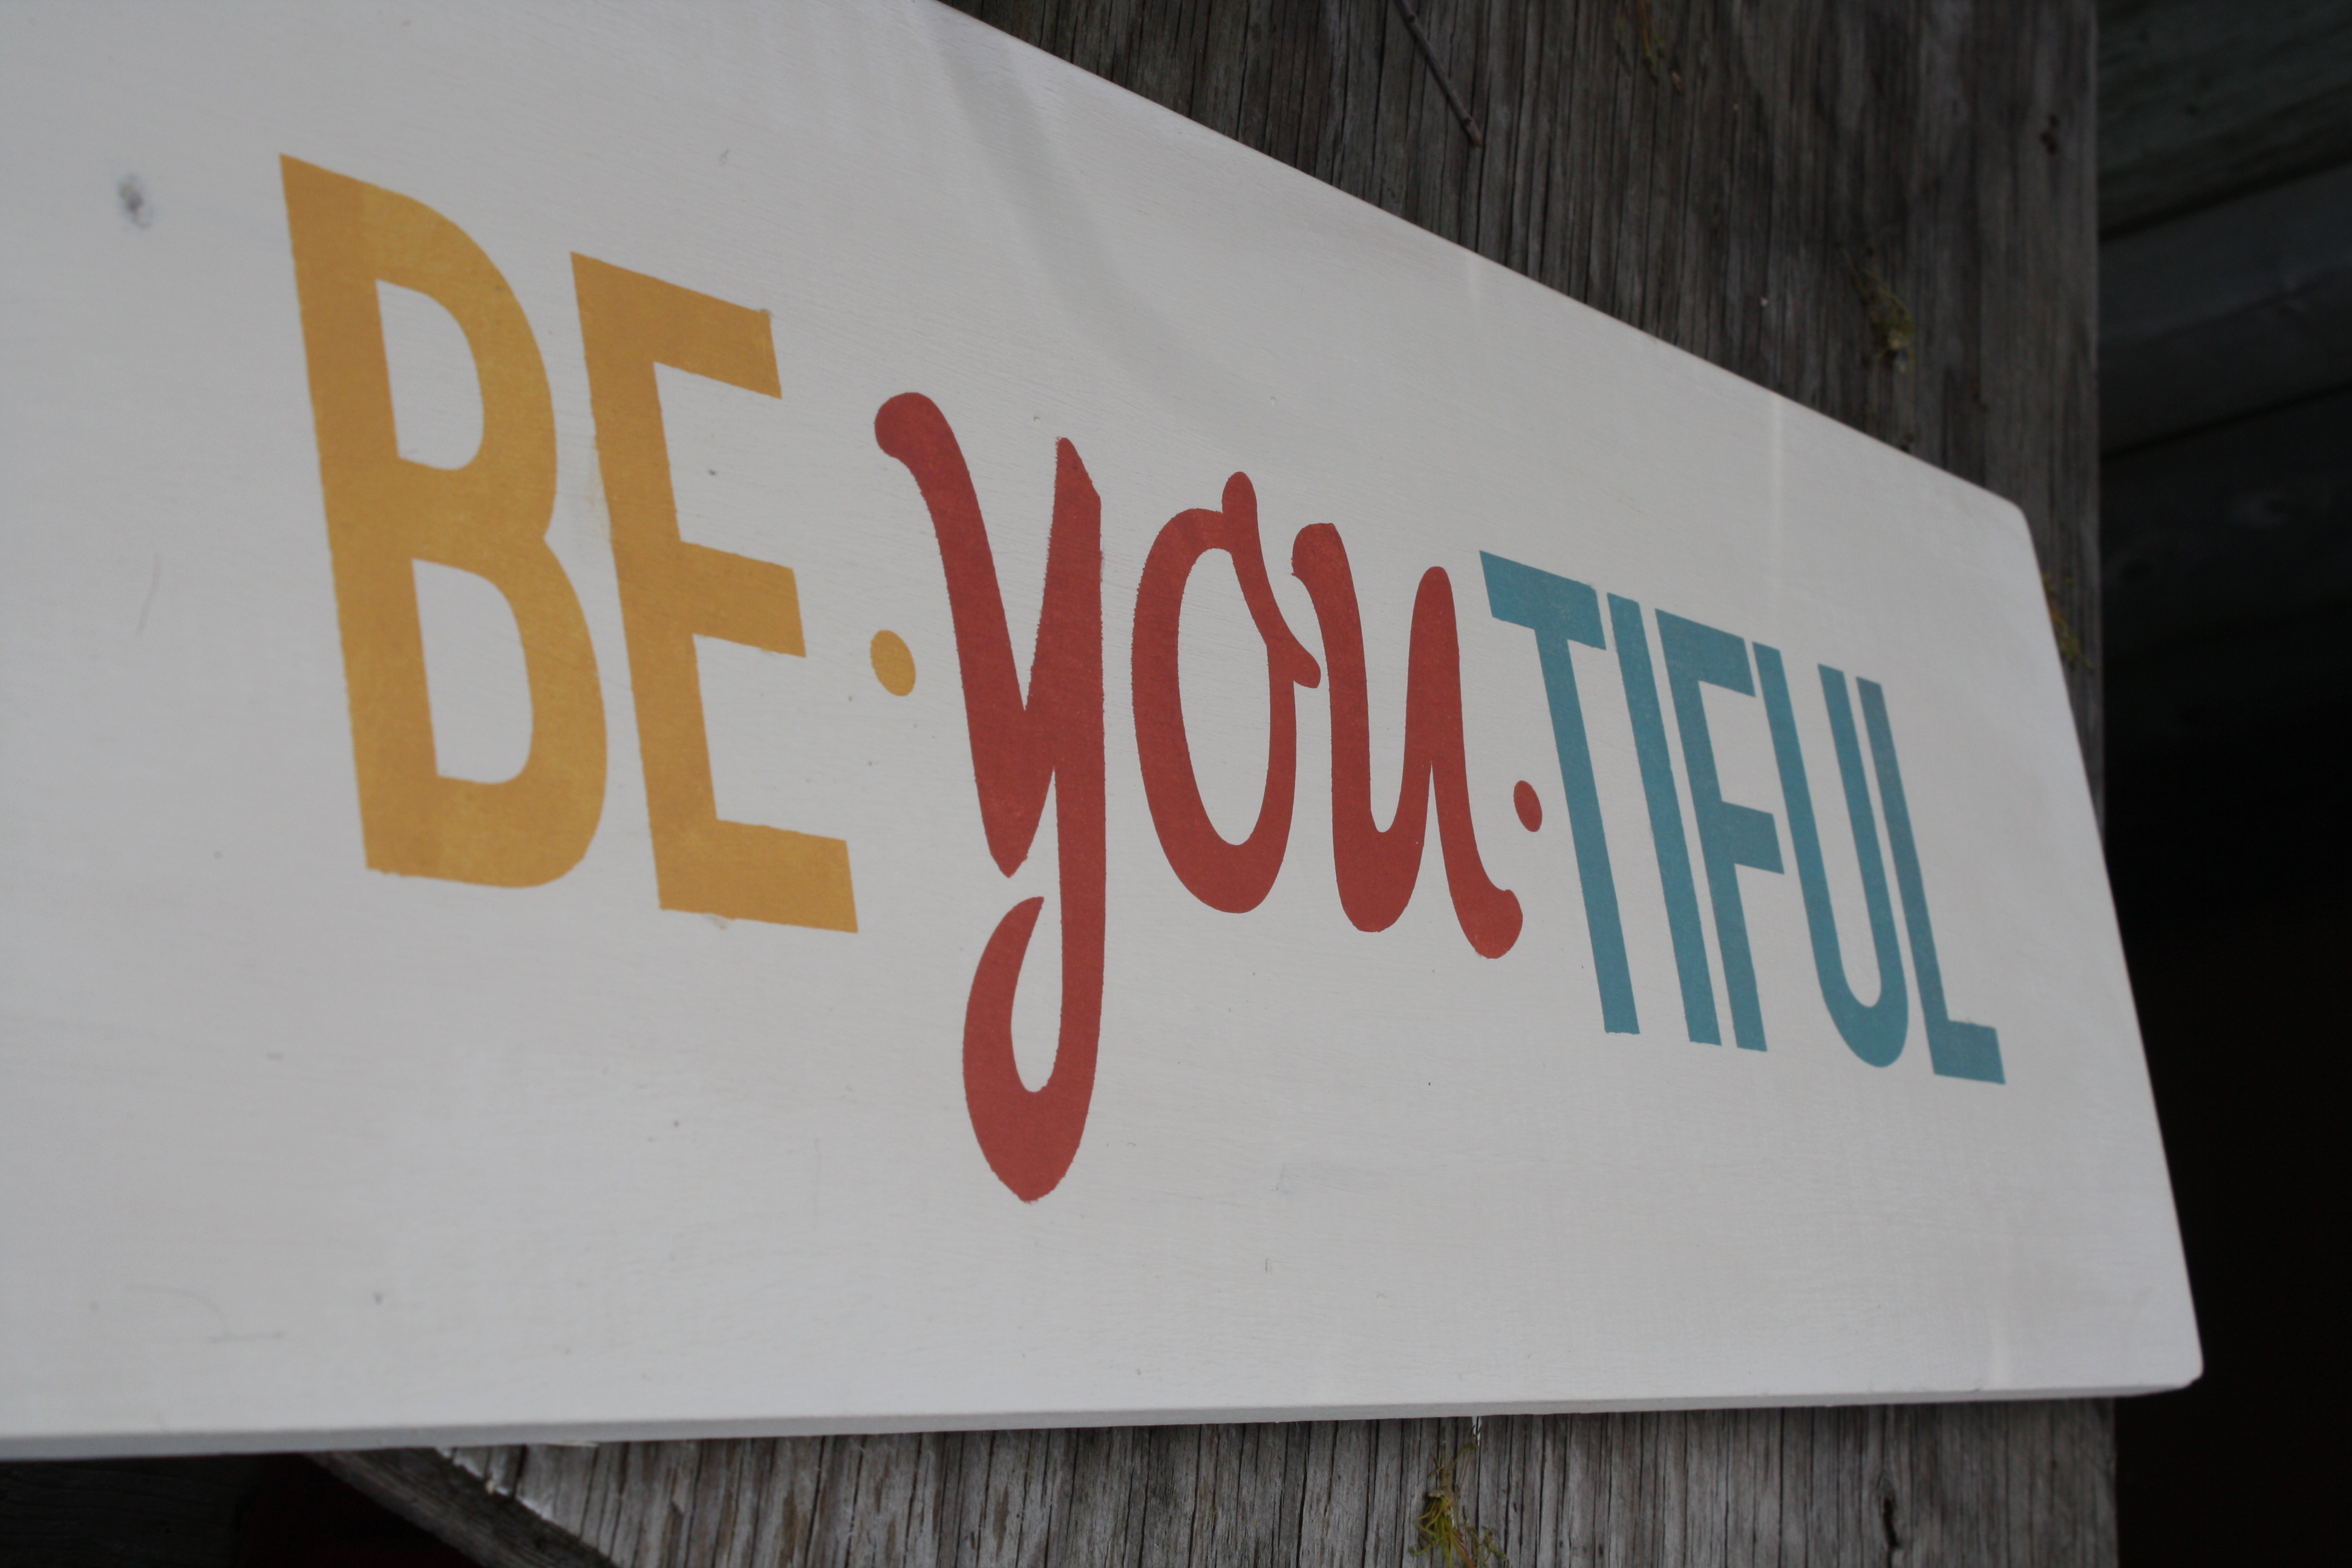 A34 - Be YOU tiful